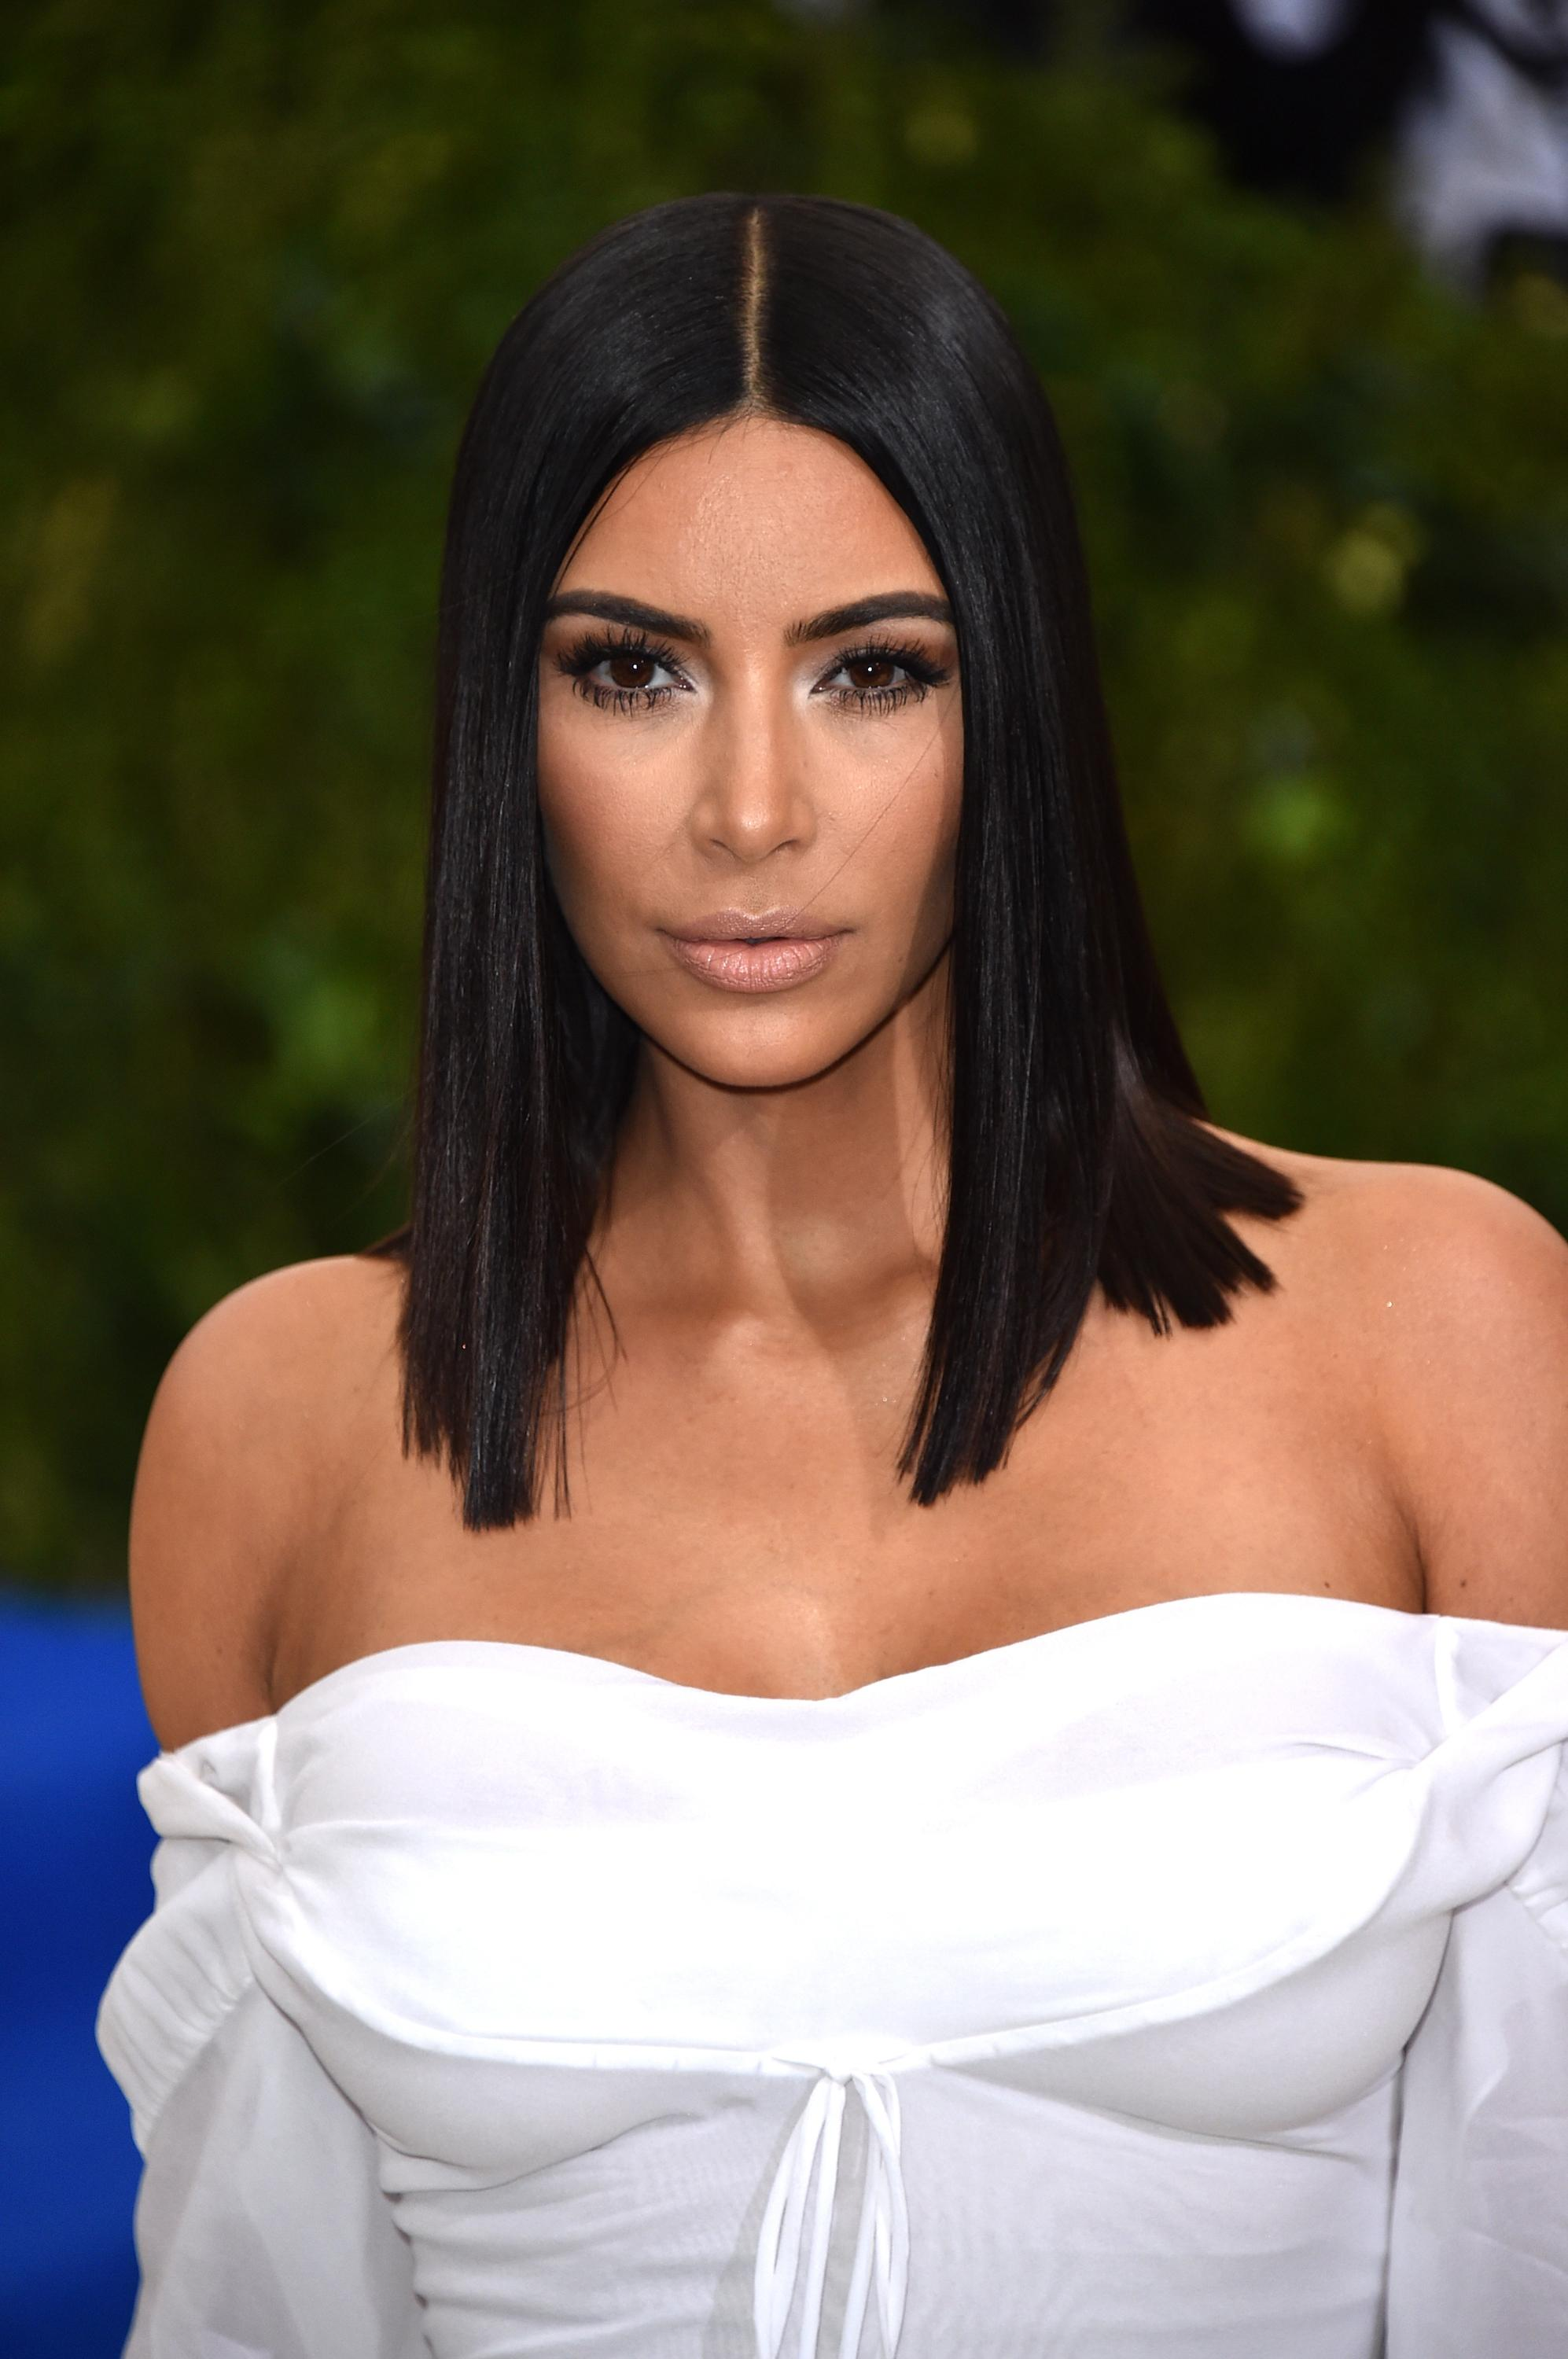 New York Ny May 01 Kim Kardashian Attends Rei Kawakubo Comme Des Garcons Art Of The In Between Costume Insute Gala At Metropolitan Museum